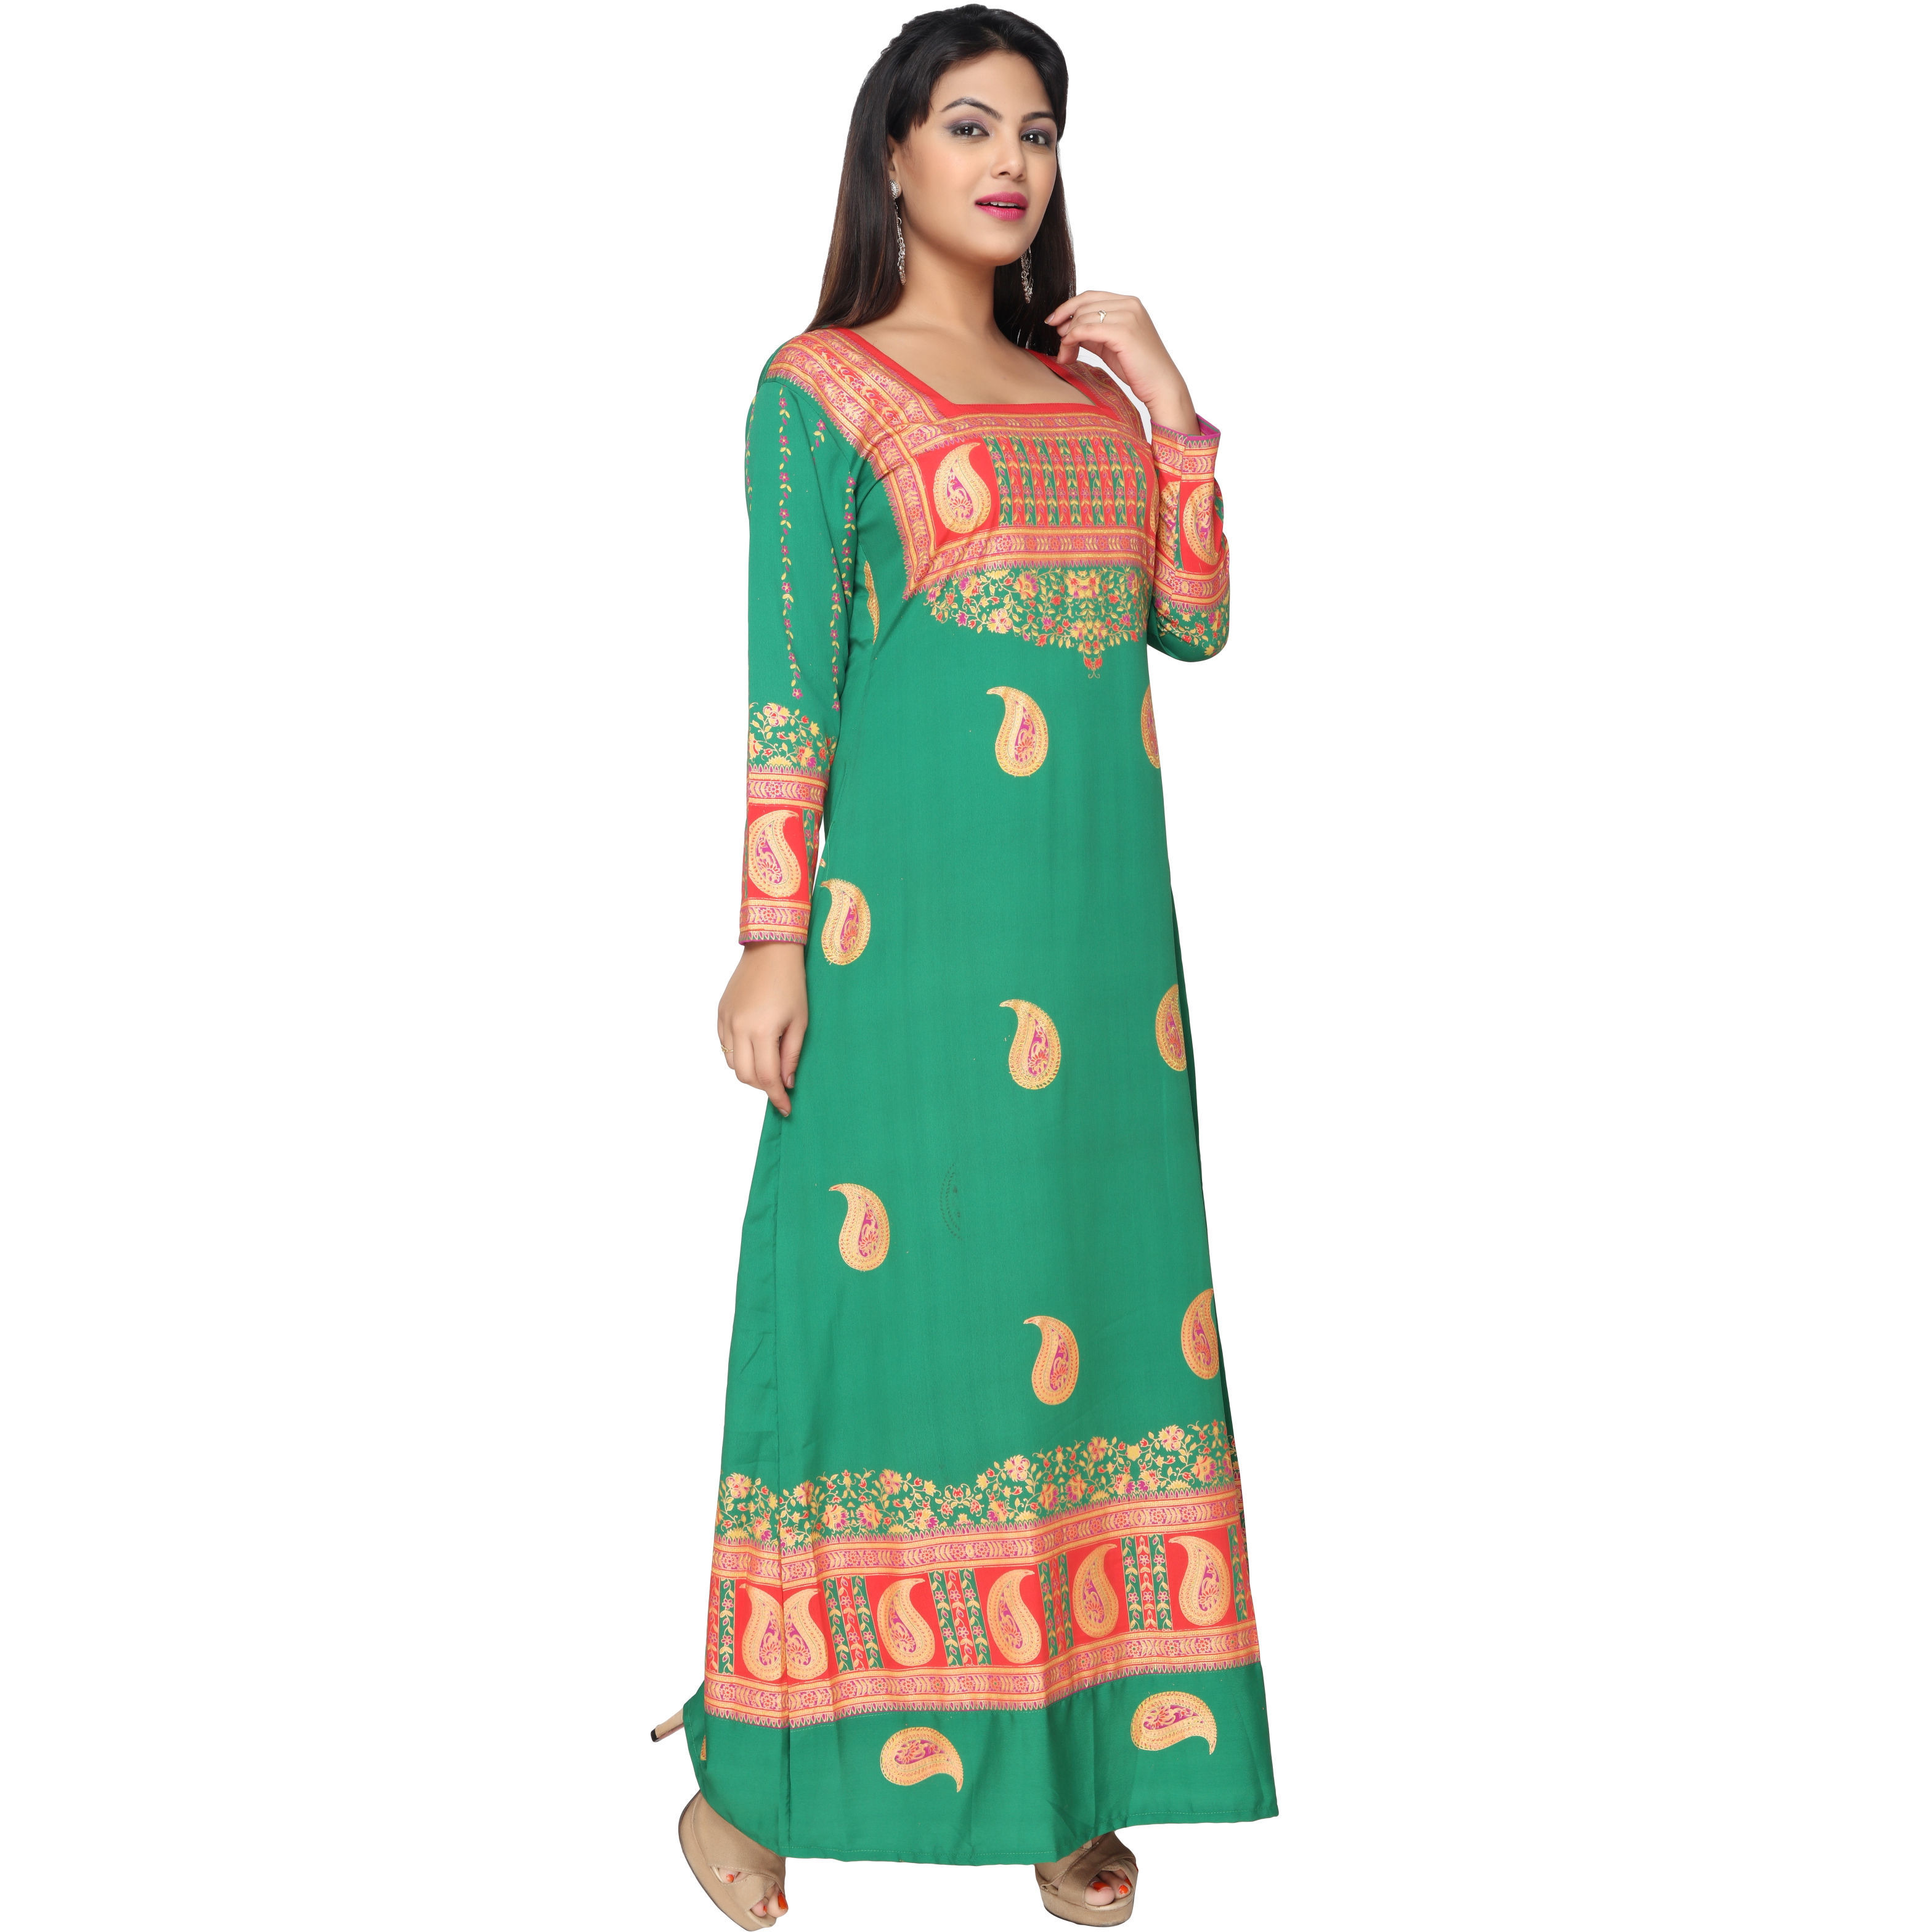 TrendyFashionMall Gold Print Kaftans Maxi Dresses with design in Front and Back (Color:TFMKFT01014-GREEN, Size:48 - 3X-LARGE)